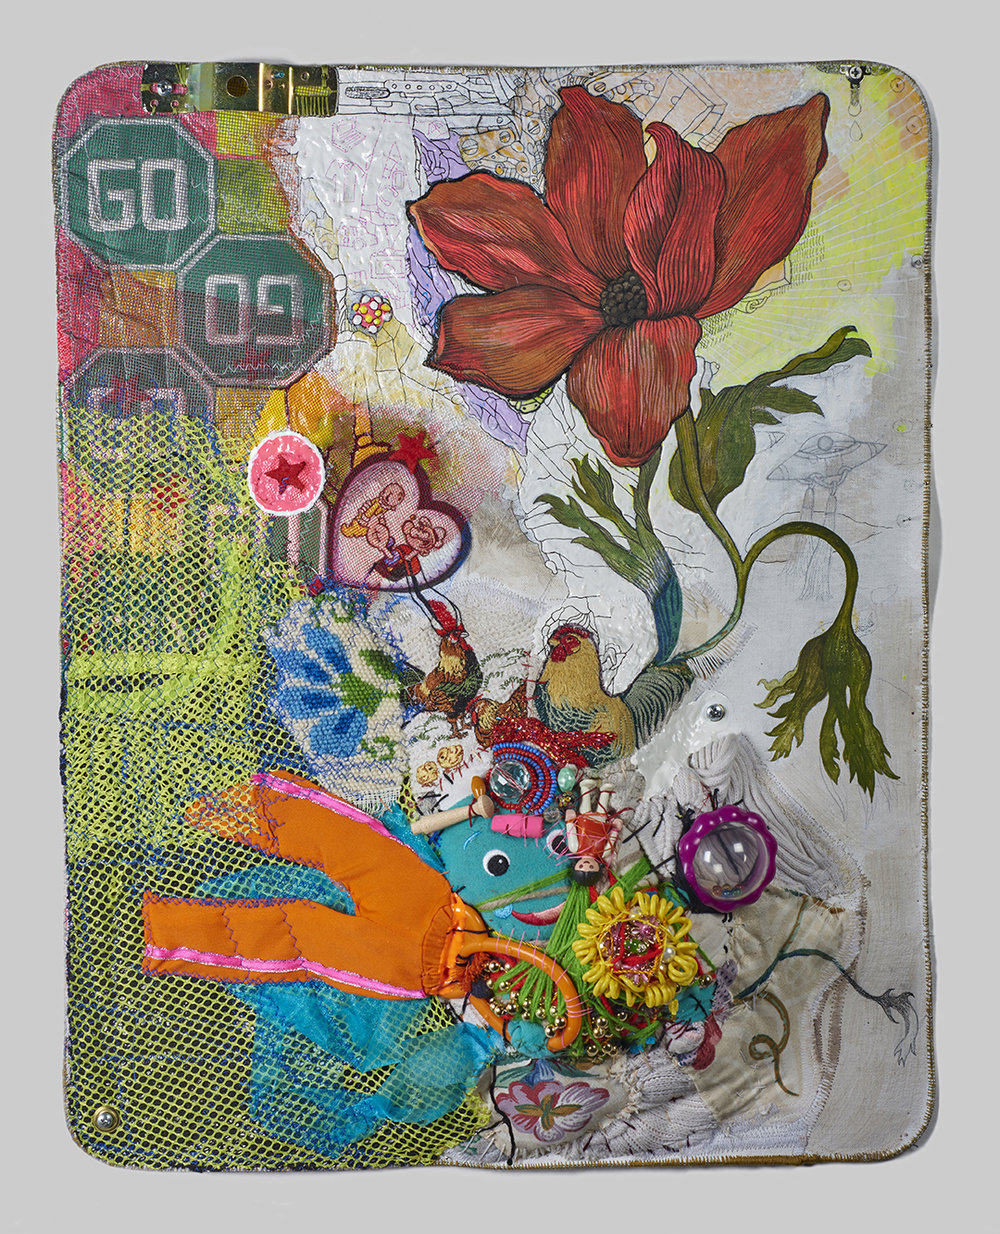 """Hybrid (After Nature by Jedediah Purdy), 2016 22 ½"""" x 17 ½"""" x 5"""""""